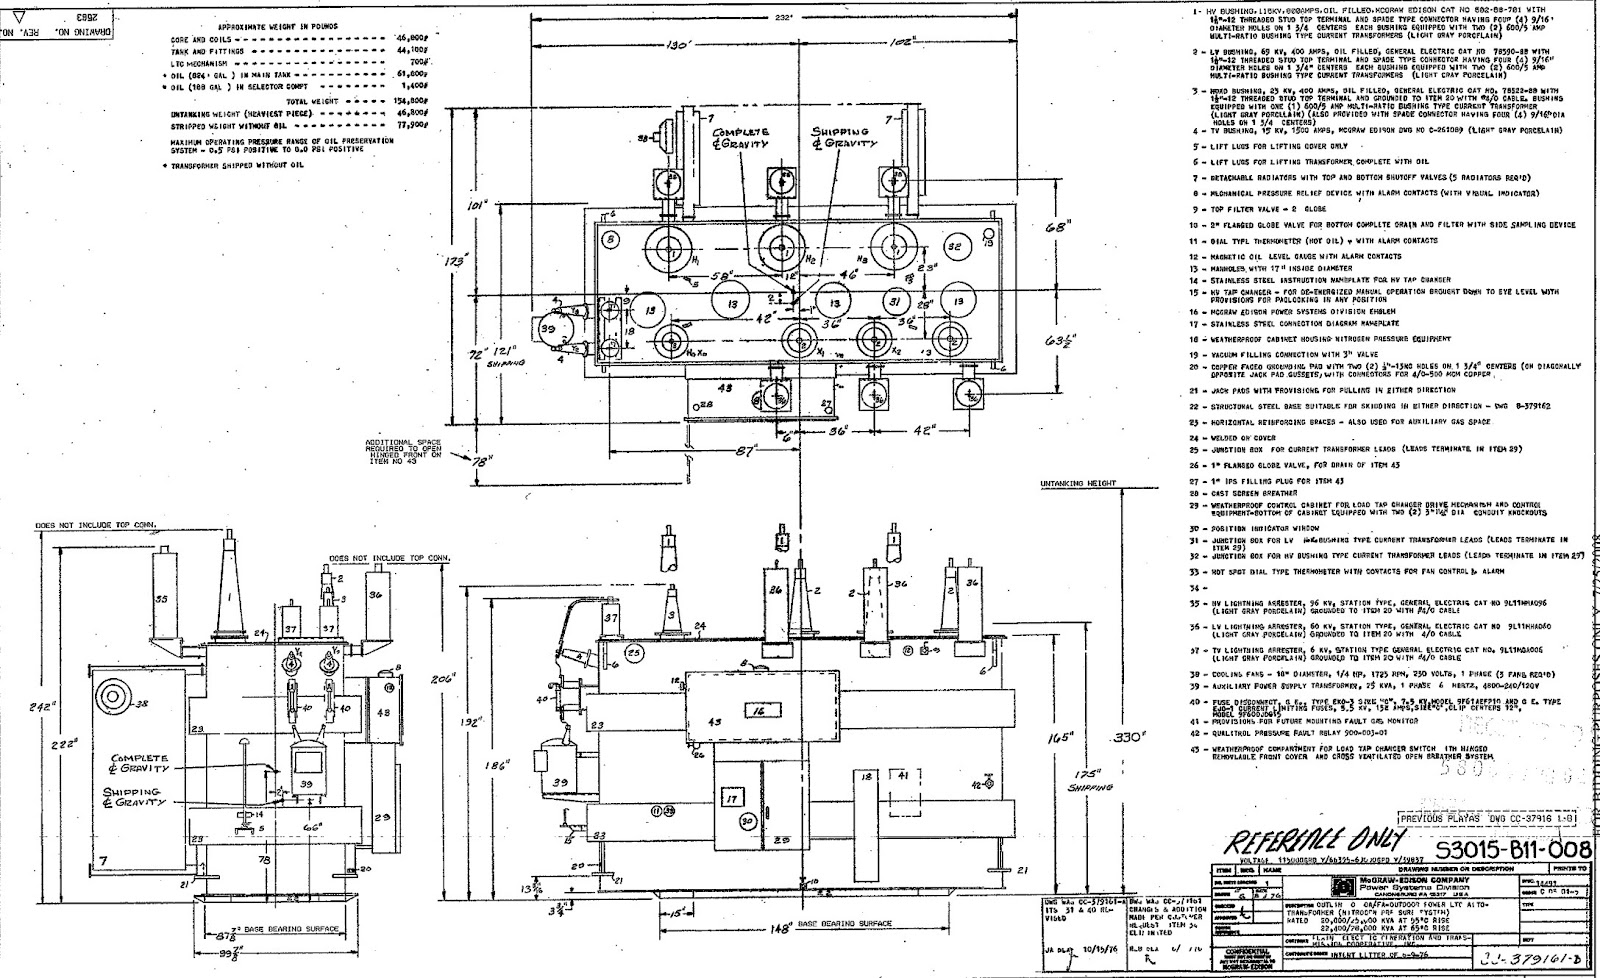 electrical mcc label  page 3